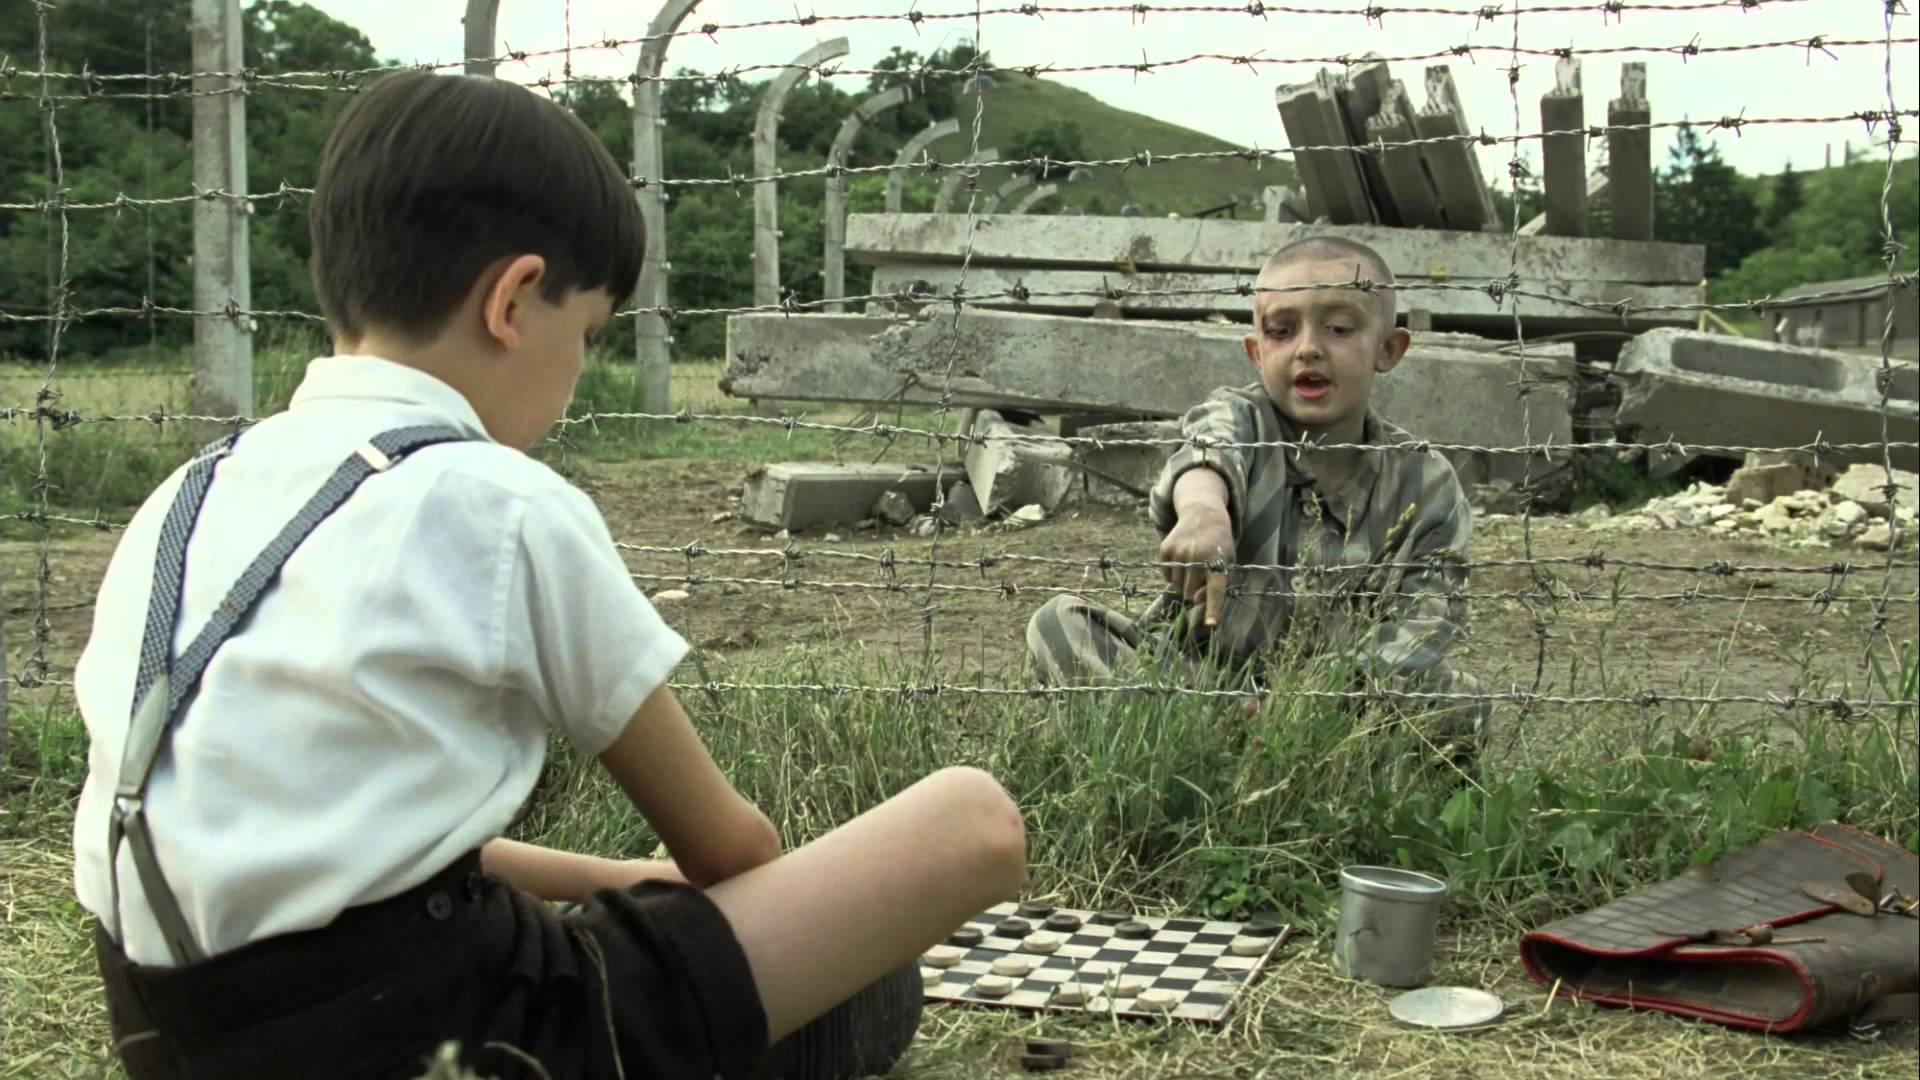 Citaten Uit The Boy In The Striped Pyjamas : Twaalf films die me bijblijven